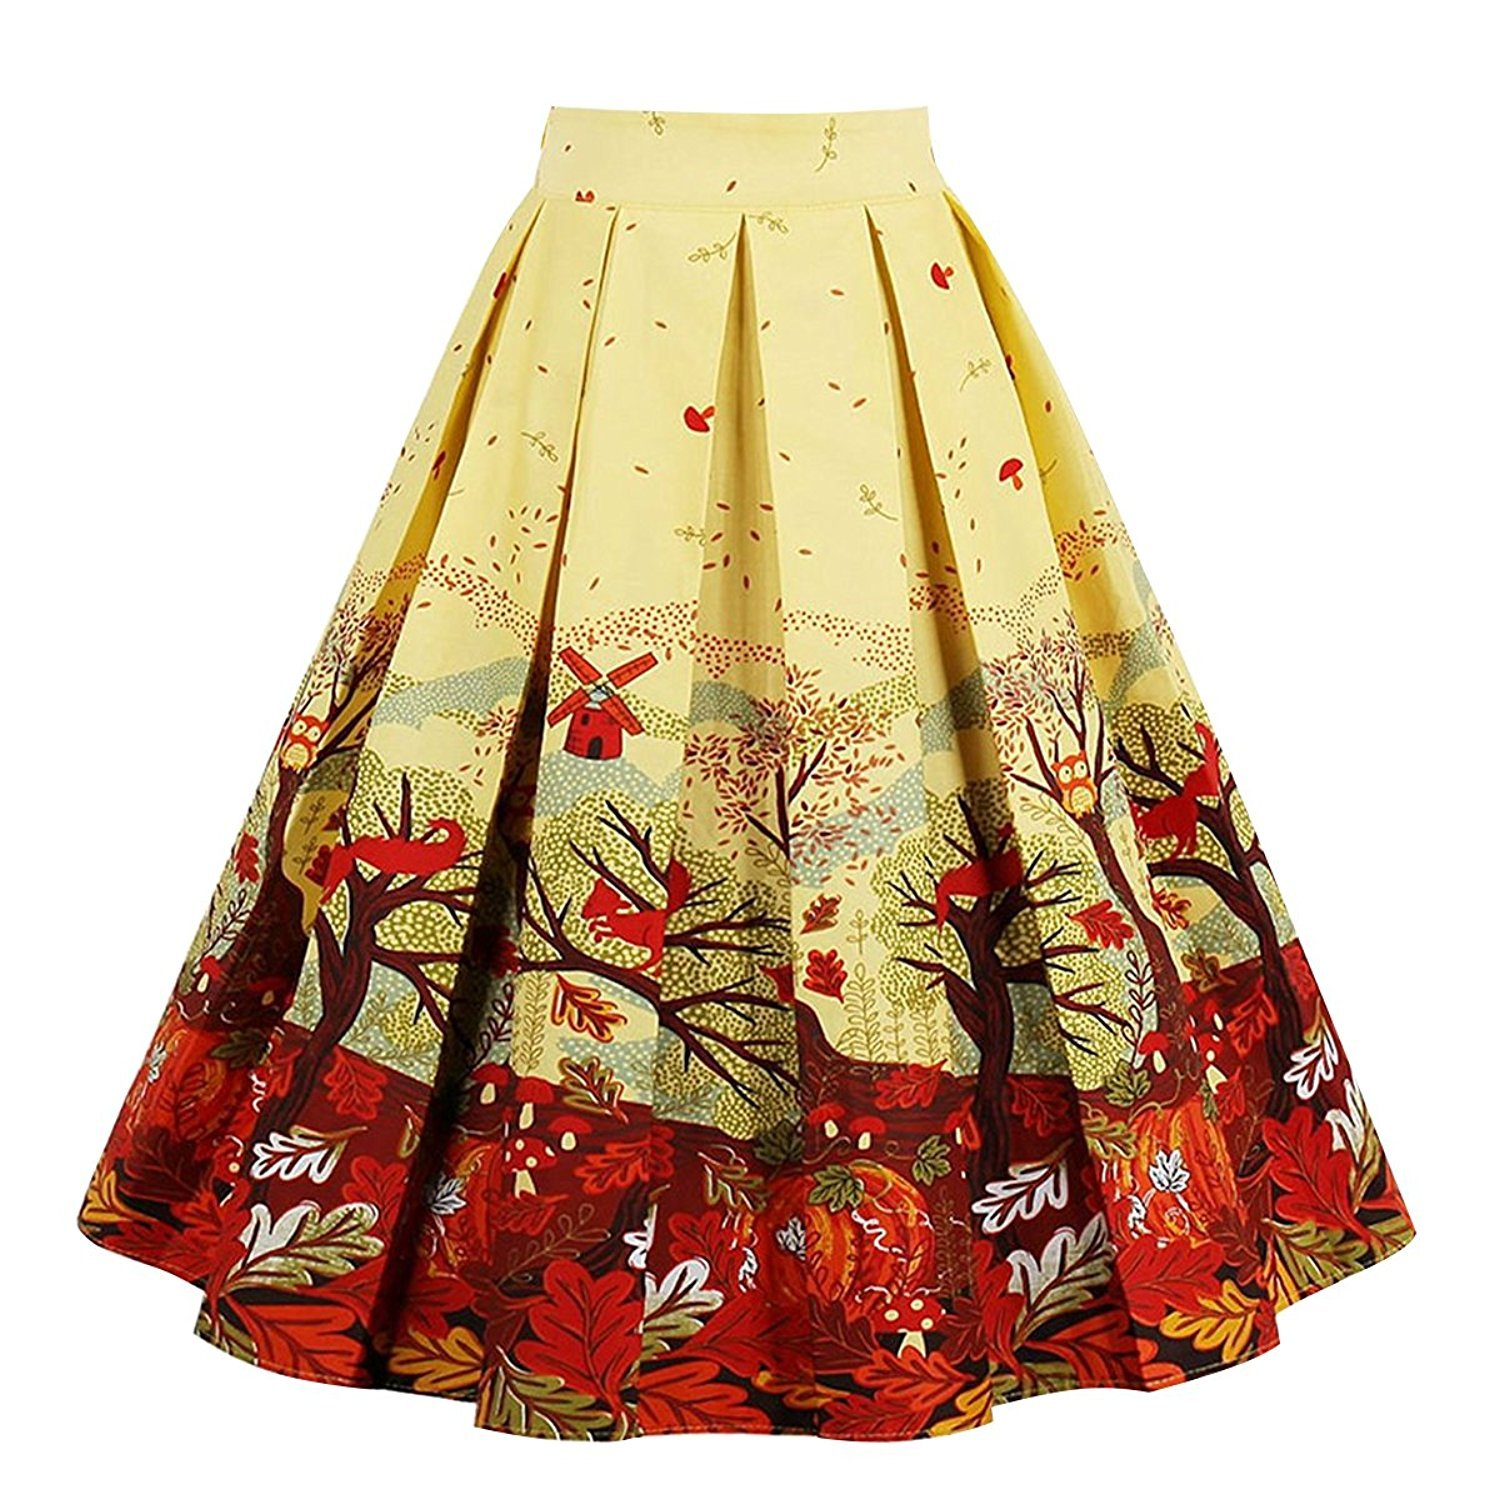 Dresstore Women's Vintage Pleated Skirt Floral A-line Printed Midi Skirts with Pockets Autumn-M